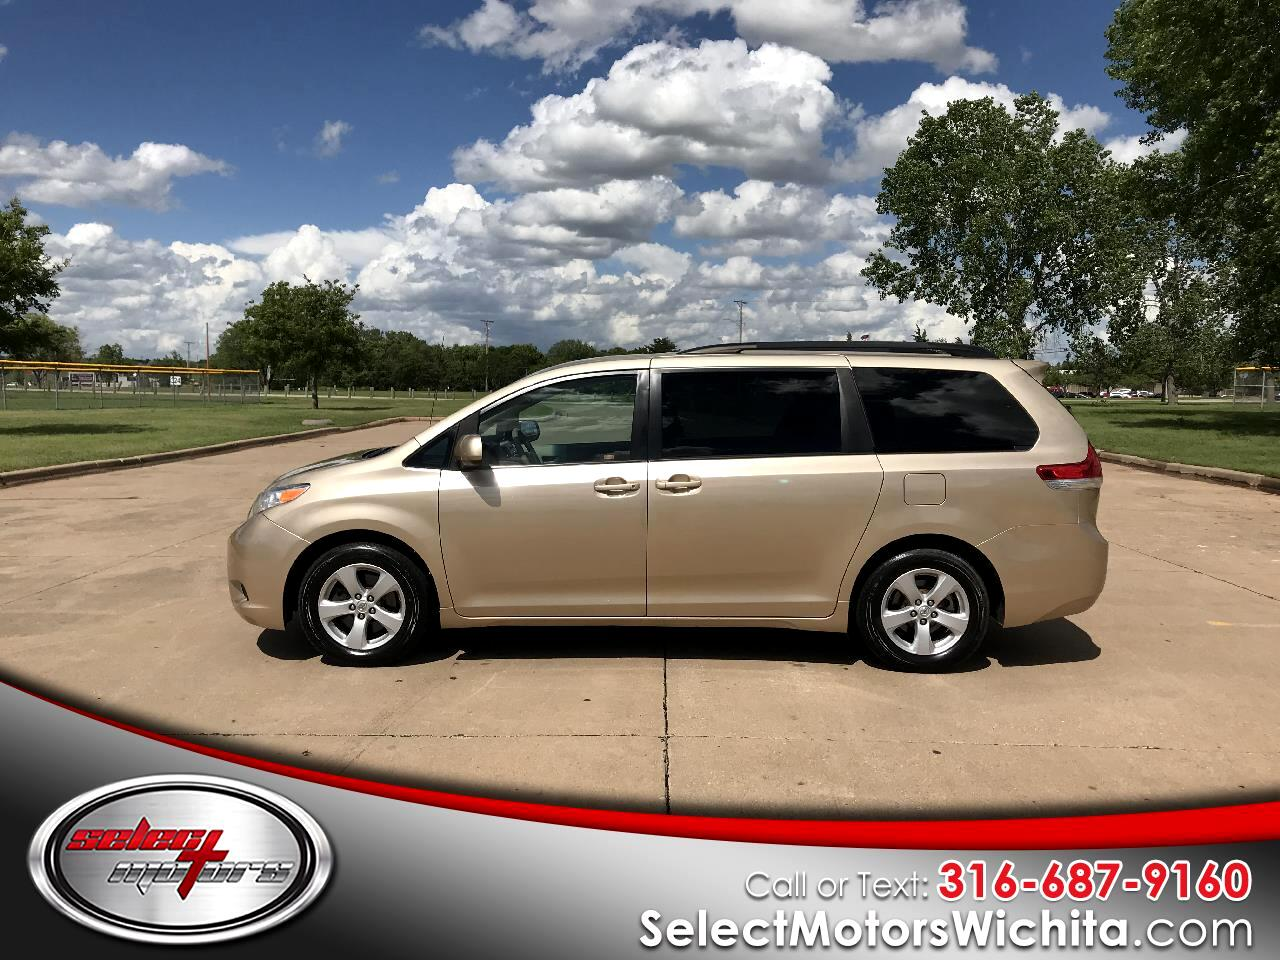 2014 Toyota Sienna 5dr 8-Pass Van V6 LE FWD (Natl)